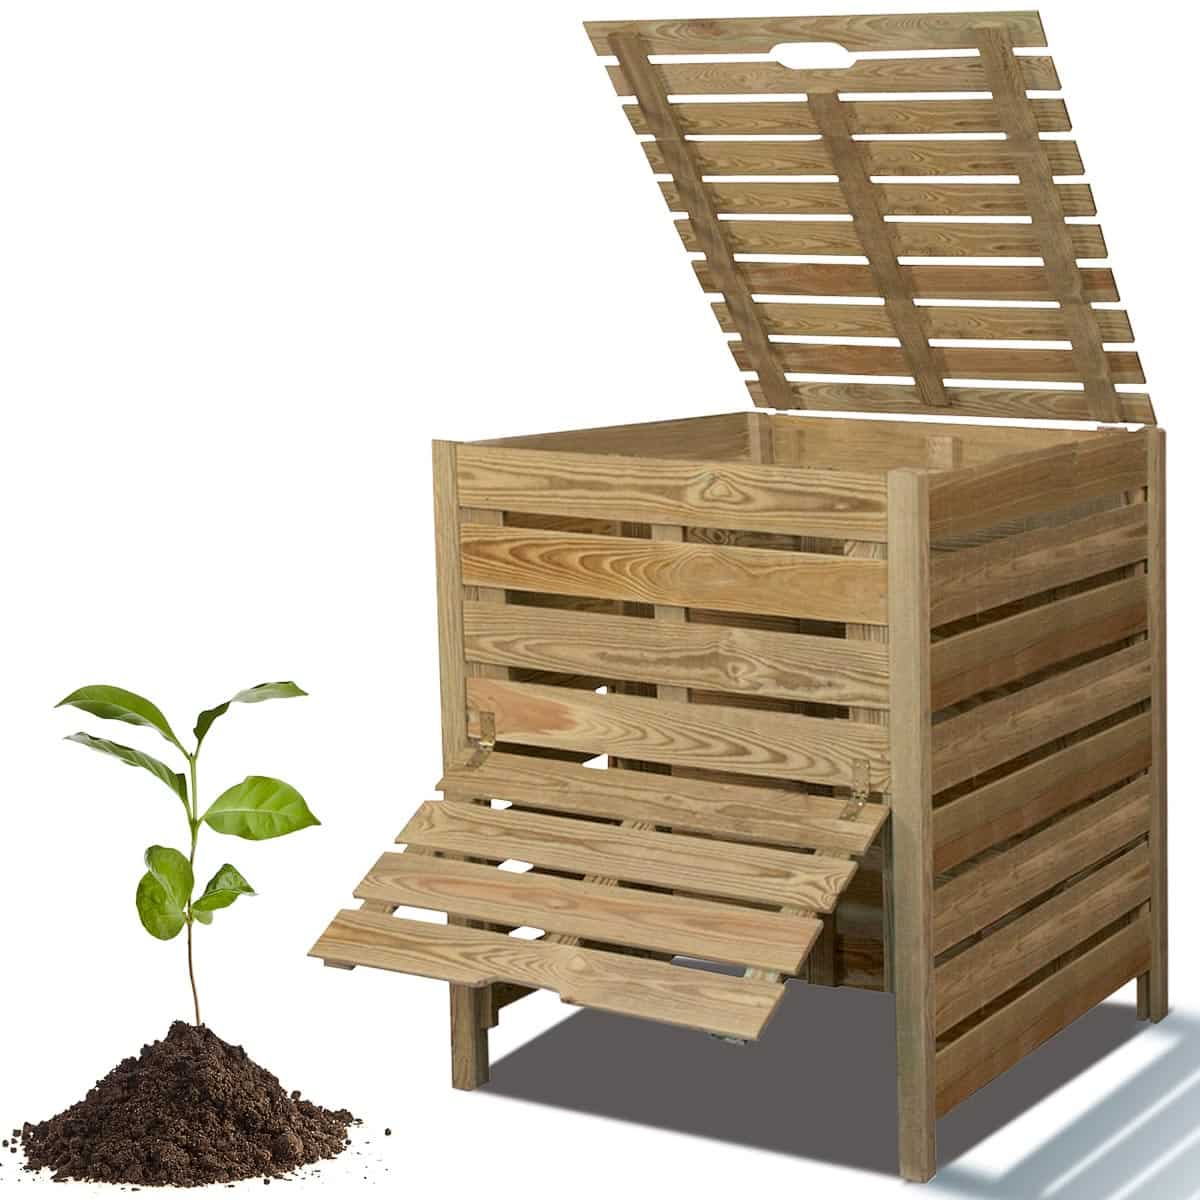 jardins anim s jardin bio recycler et composter. Black Bedroom Furniture Sets. Home Design Ideas